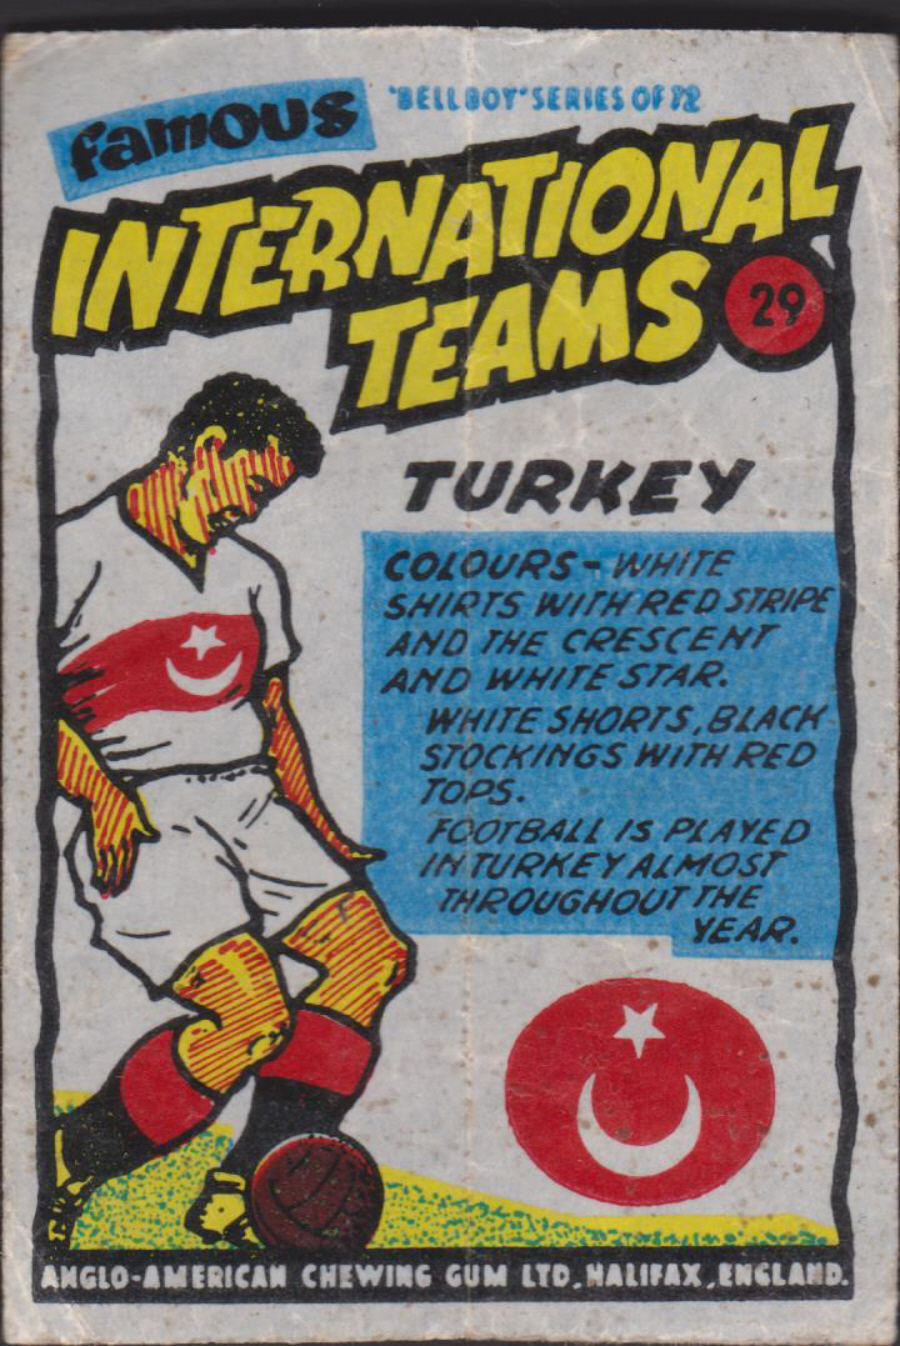 Anglo-American-Chewing-Gum-Wax-Wrapper-Famous International Teams -No-29 -Turkey